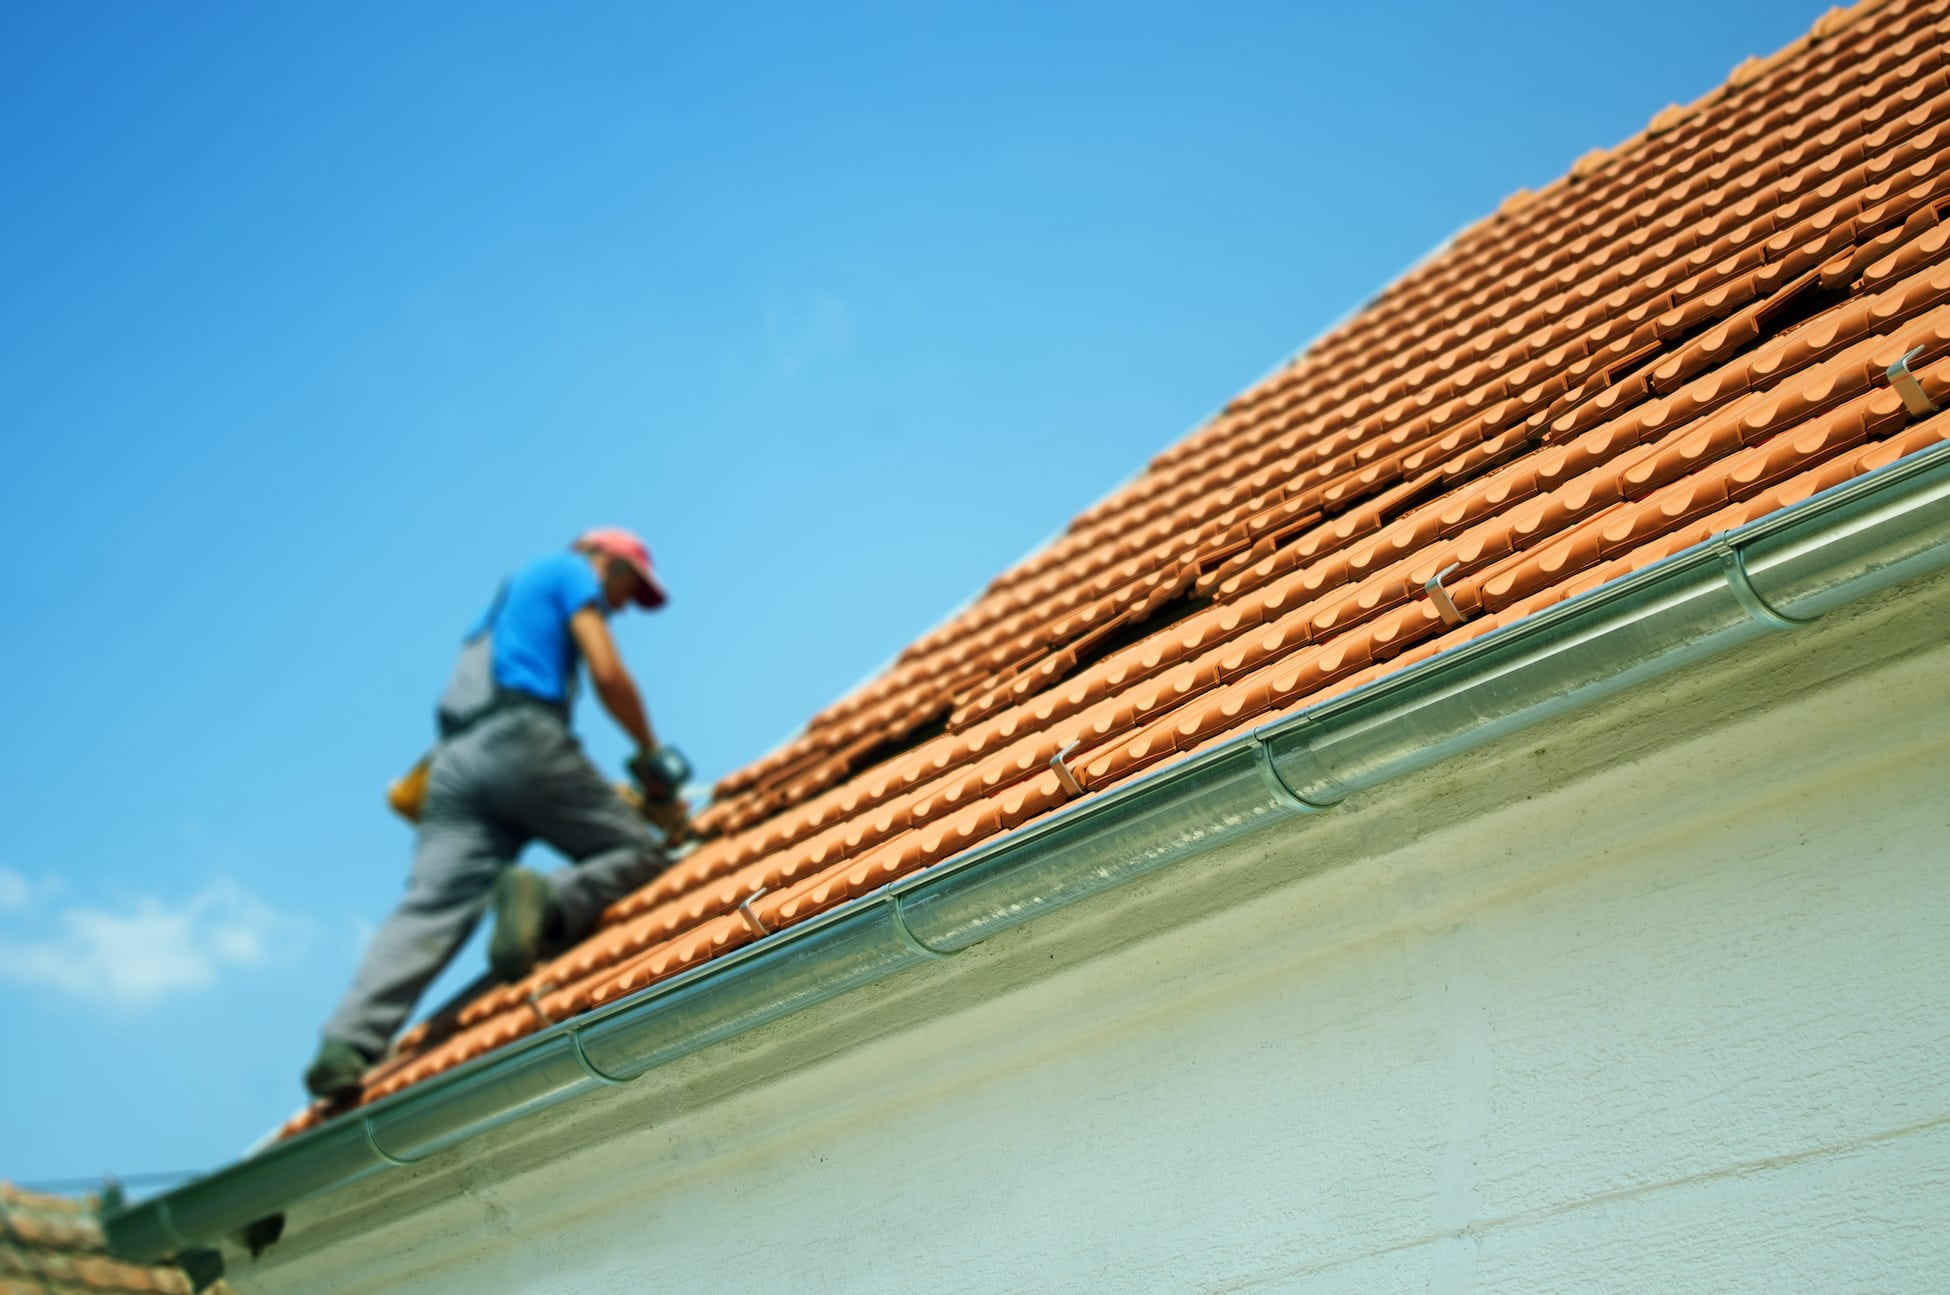 repairing a clay tile residential roof